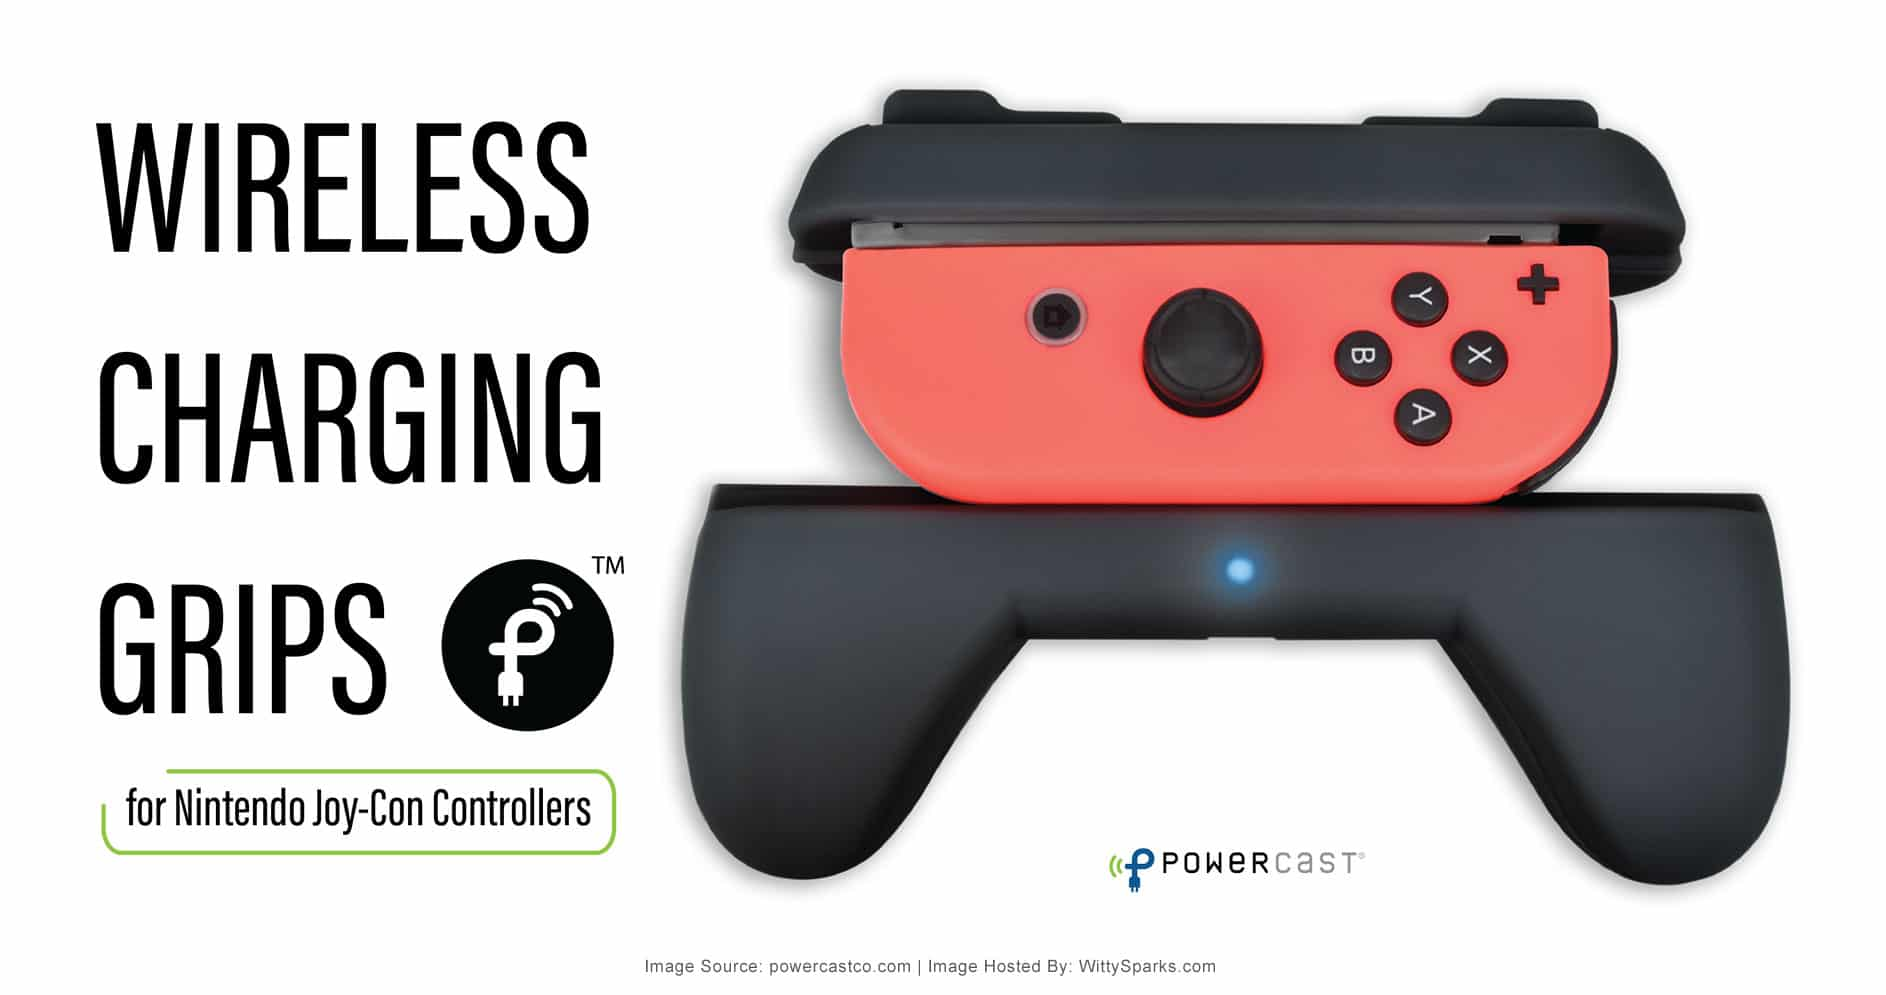 Wireless Charging Grips for Nintendo Joy-Con Controllers